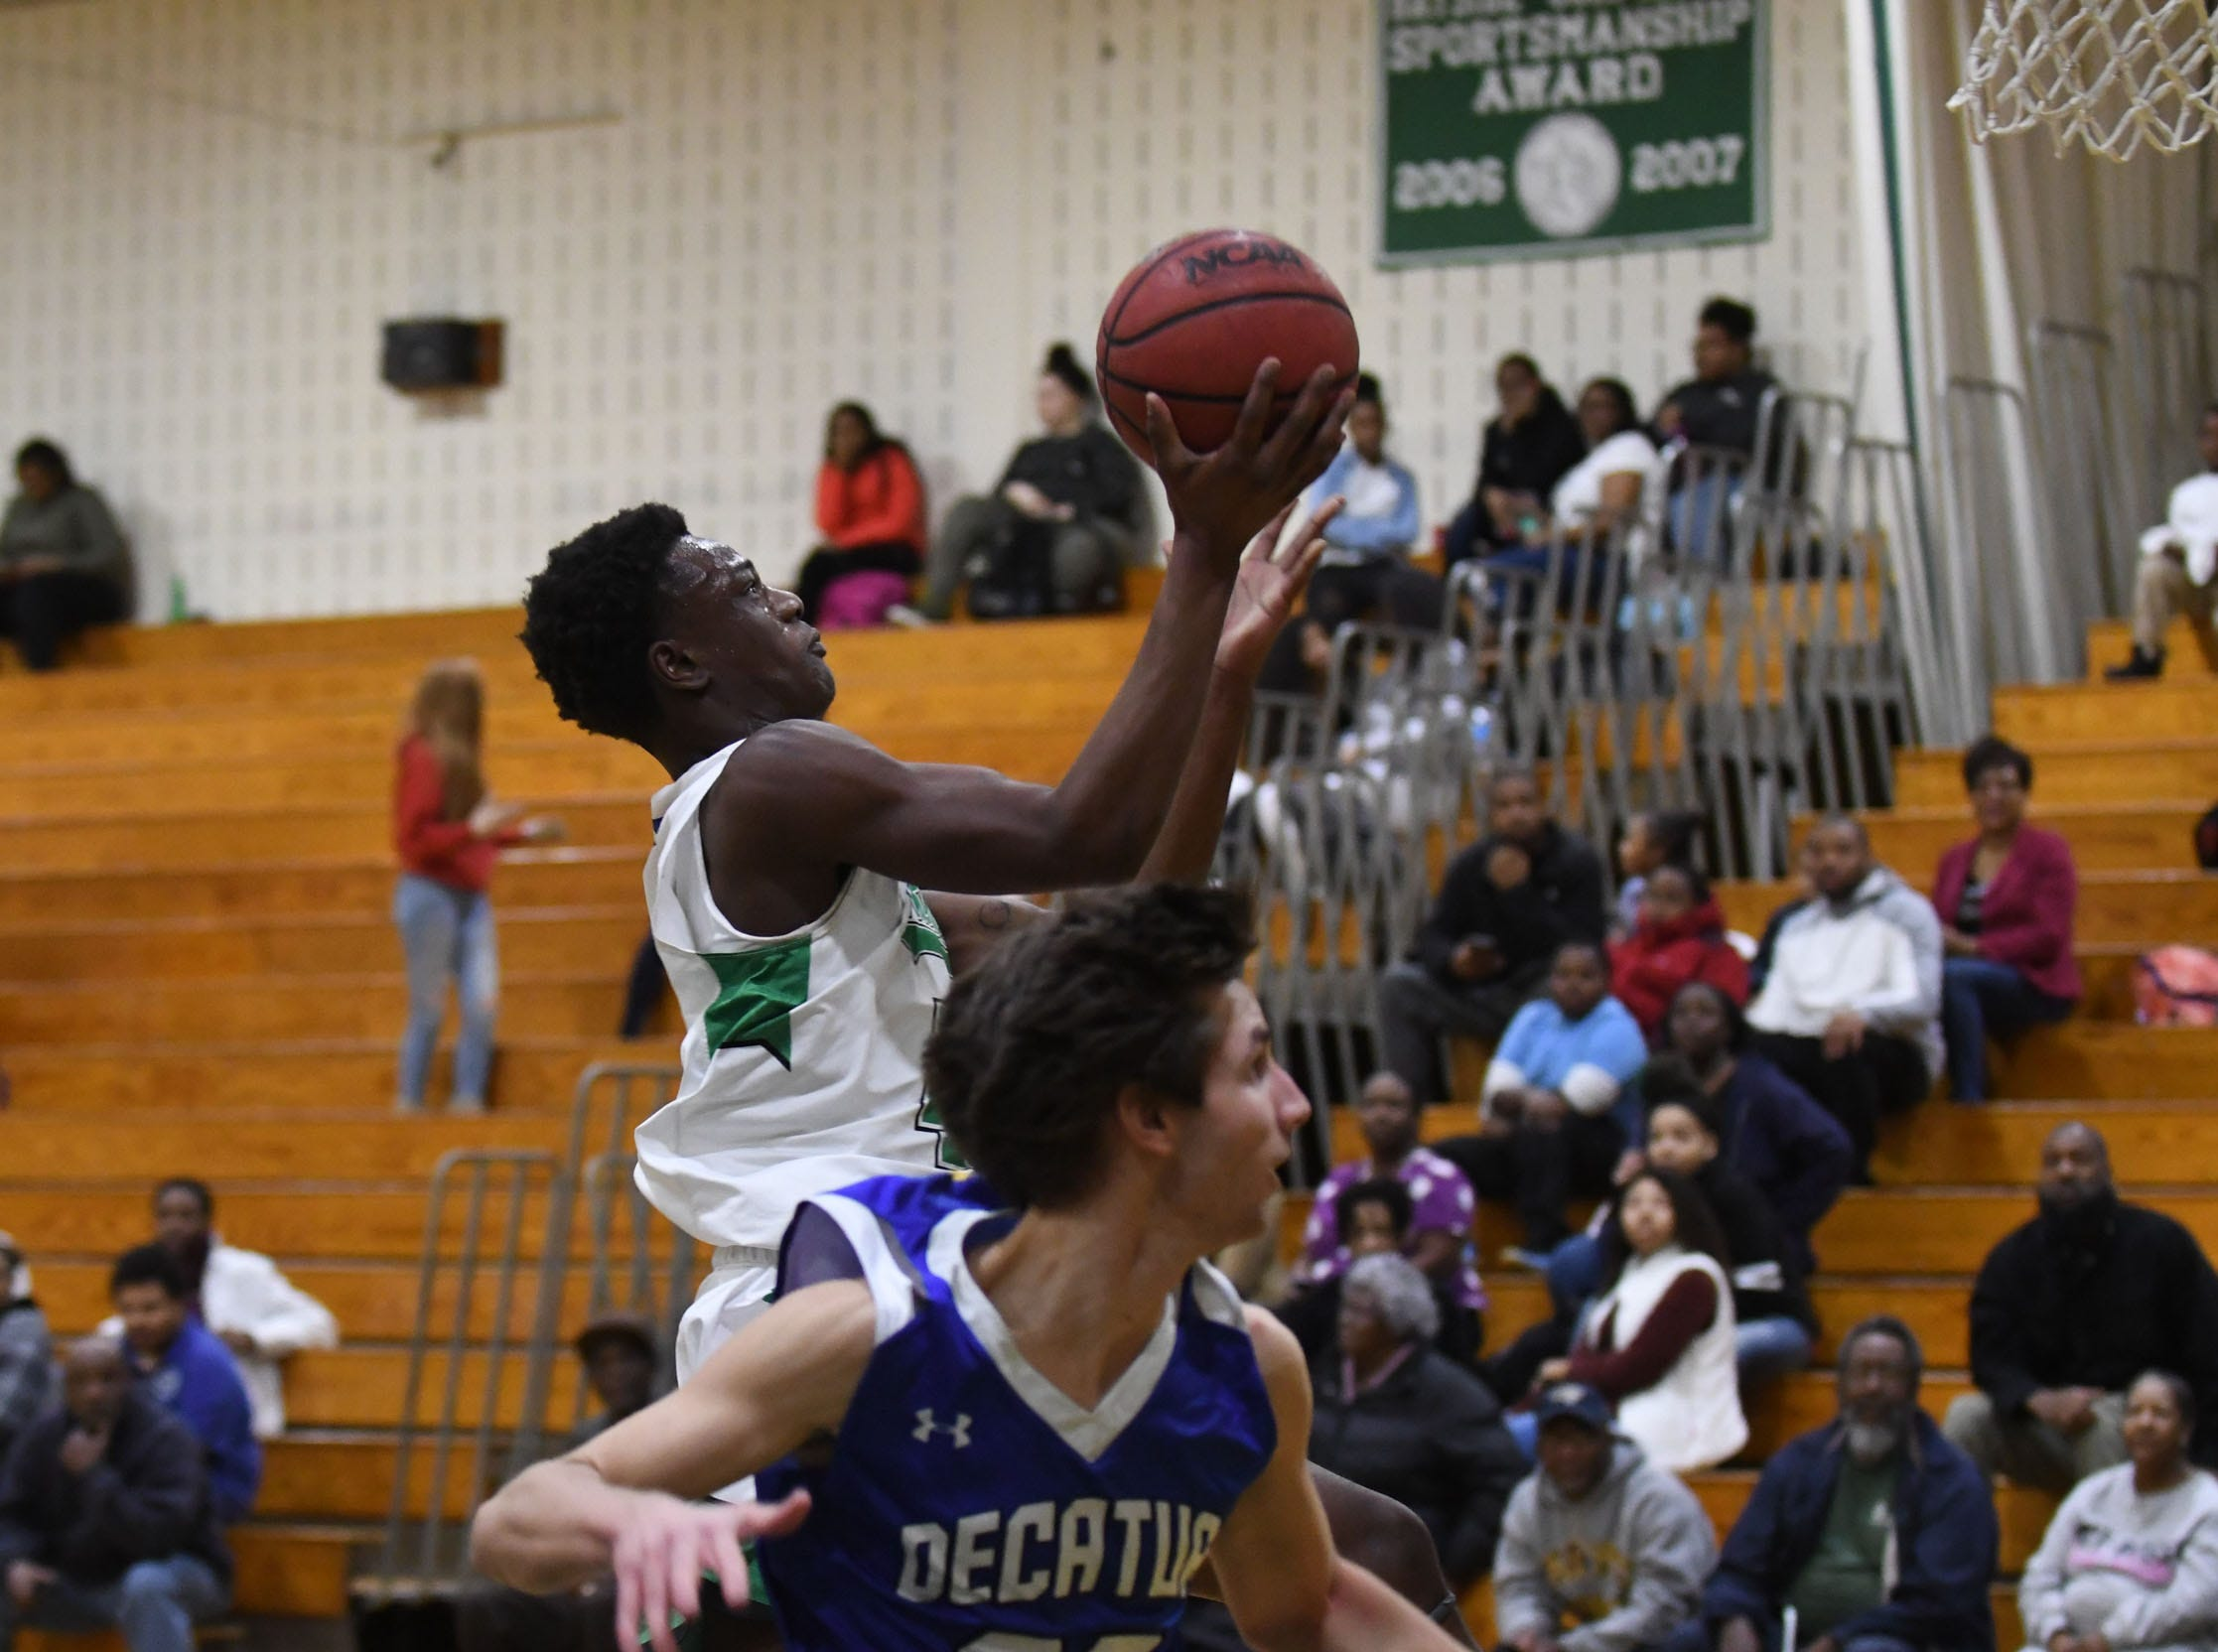 Parkside's Daquair Beaty with the lay up against Stephen Decatur on Thursday, Jan. 10, 2019.